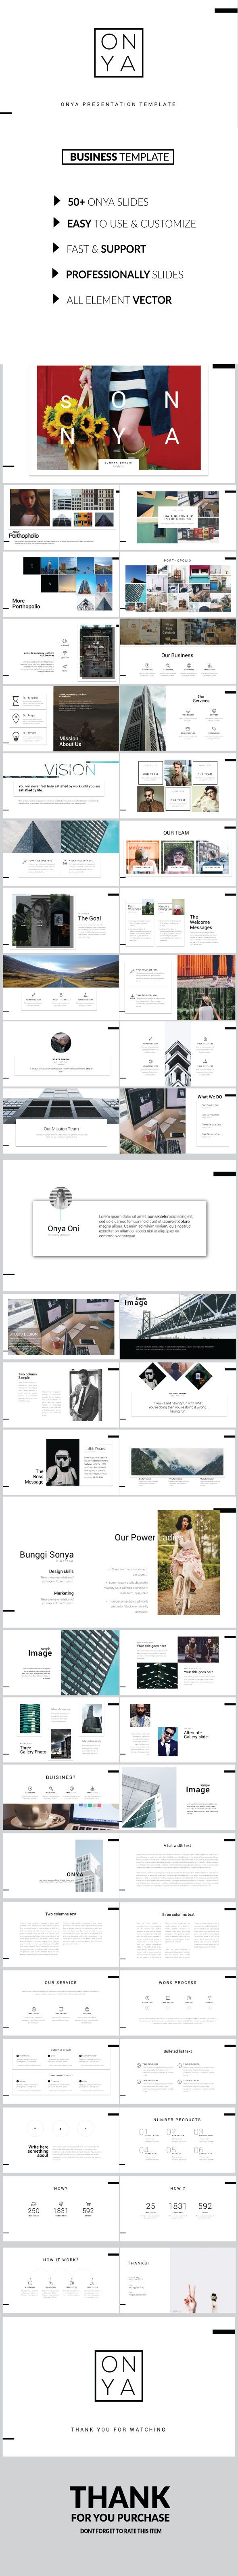 Onya - Clean Multipose Template Powerpoint - Business PowerPoint Templates